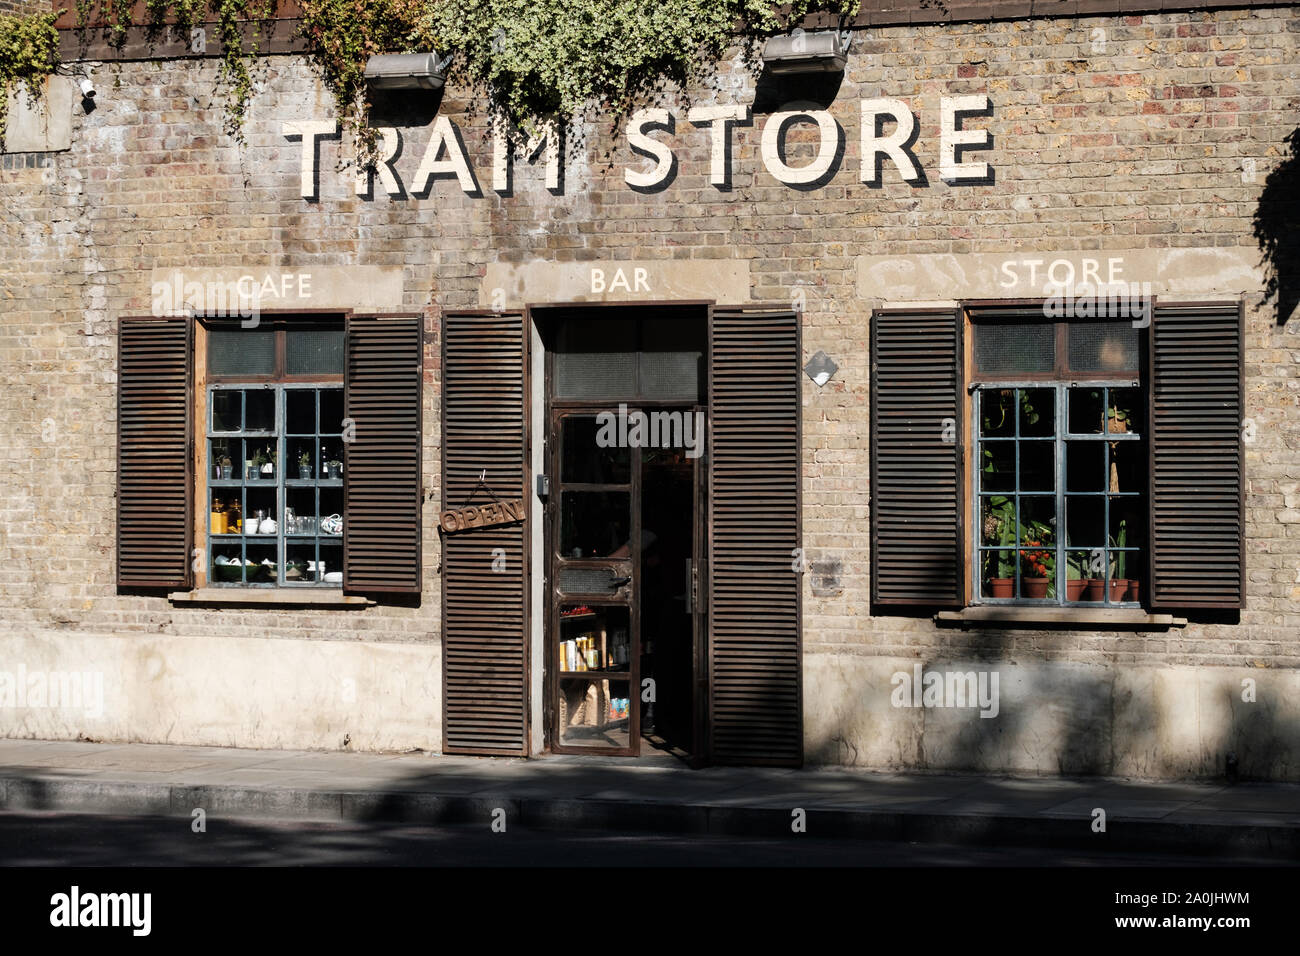 The Tram Store in Clapton, Hackney, East London, a hipster cafe serving vegan food set in the old Clapton Tram Depot. Stock Photo